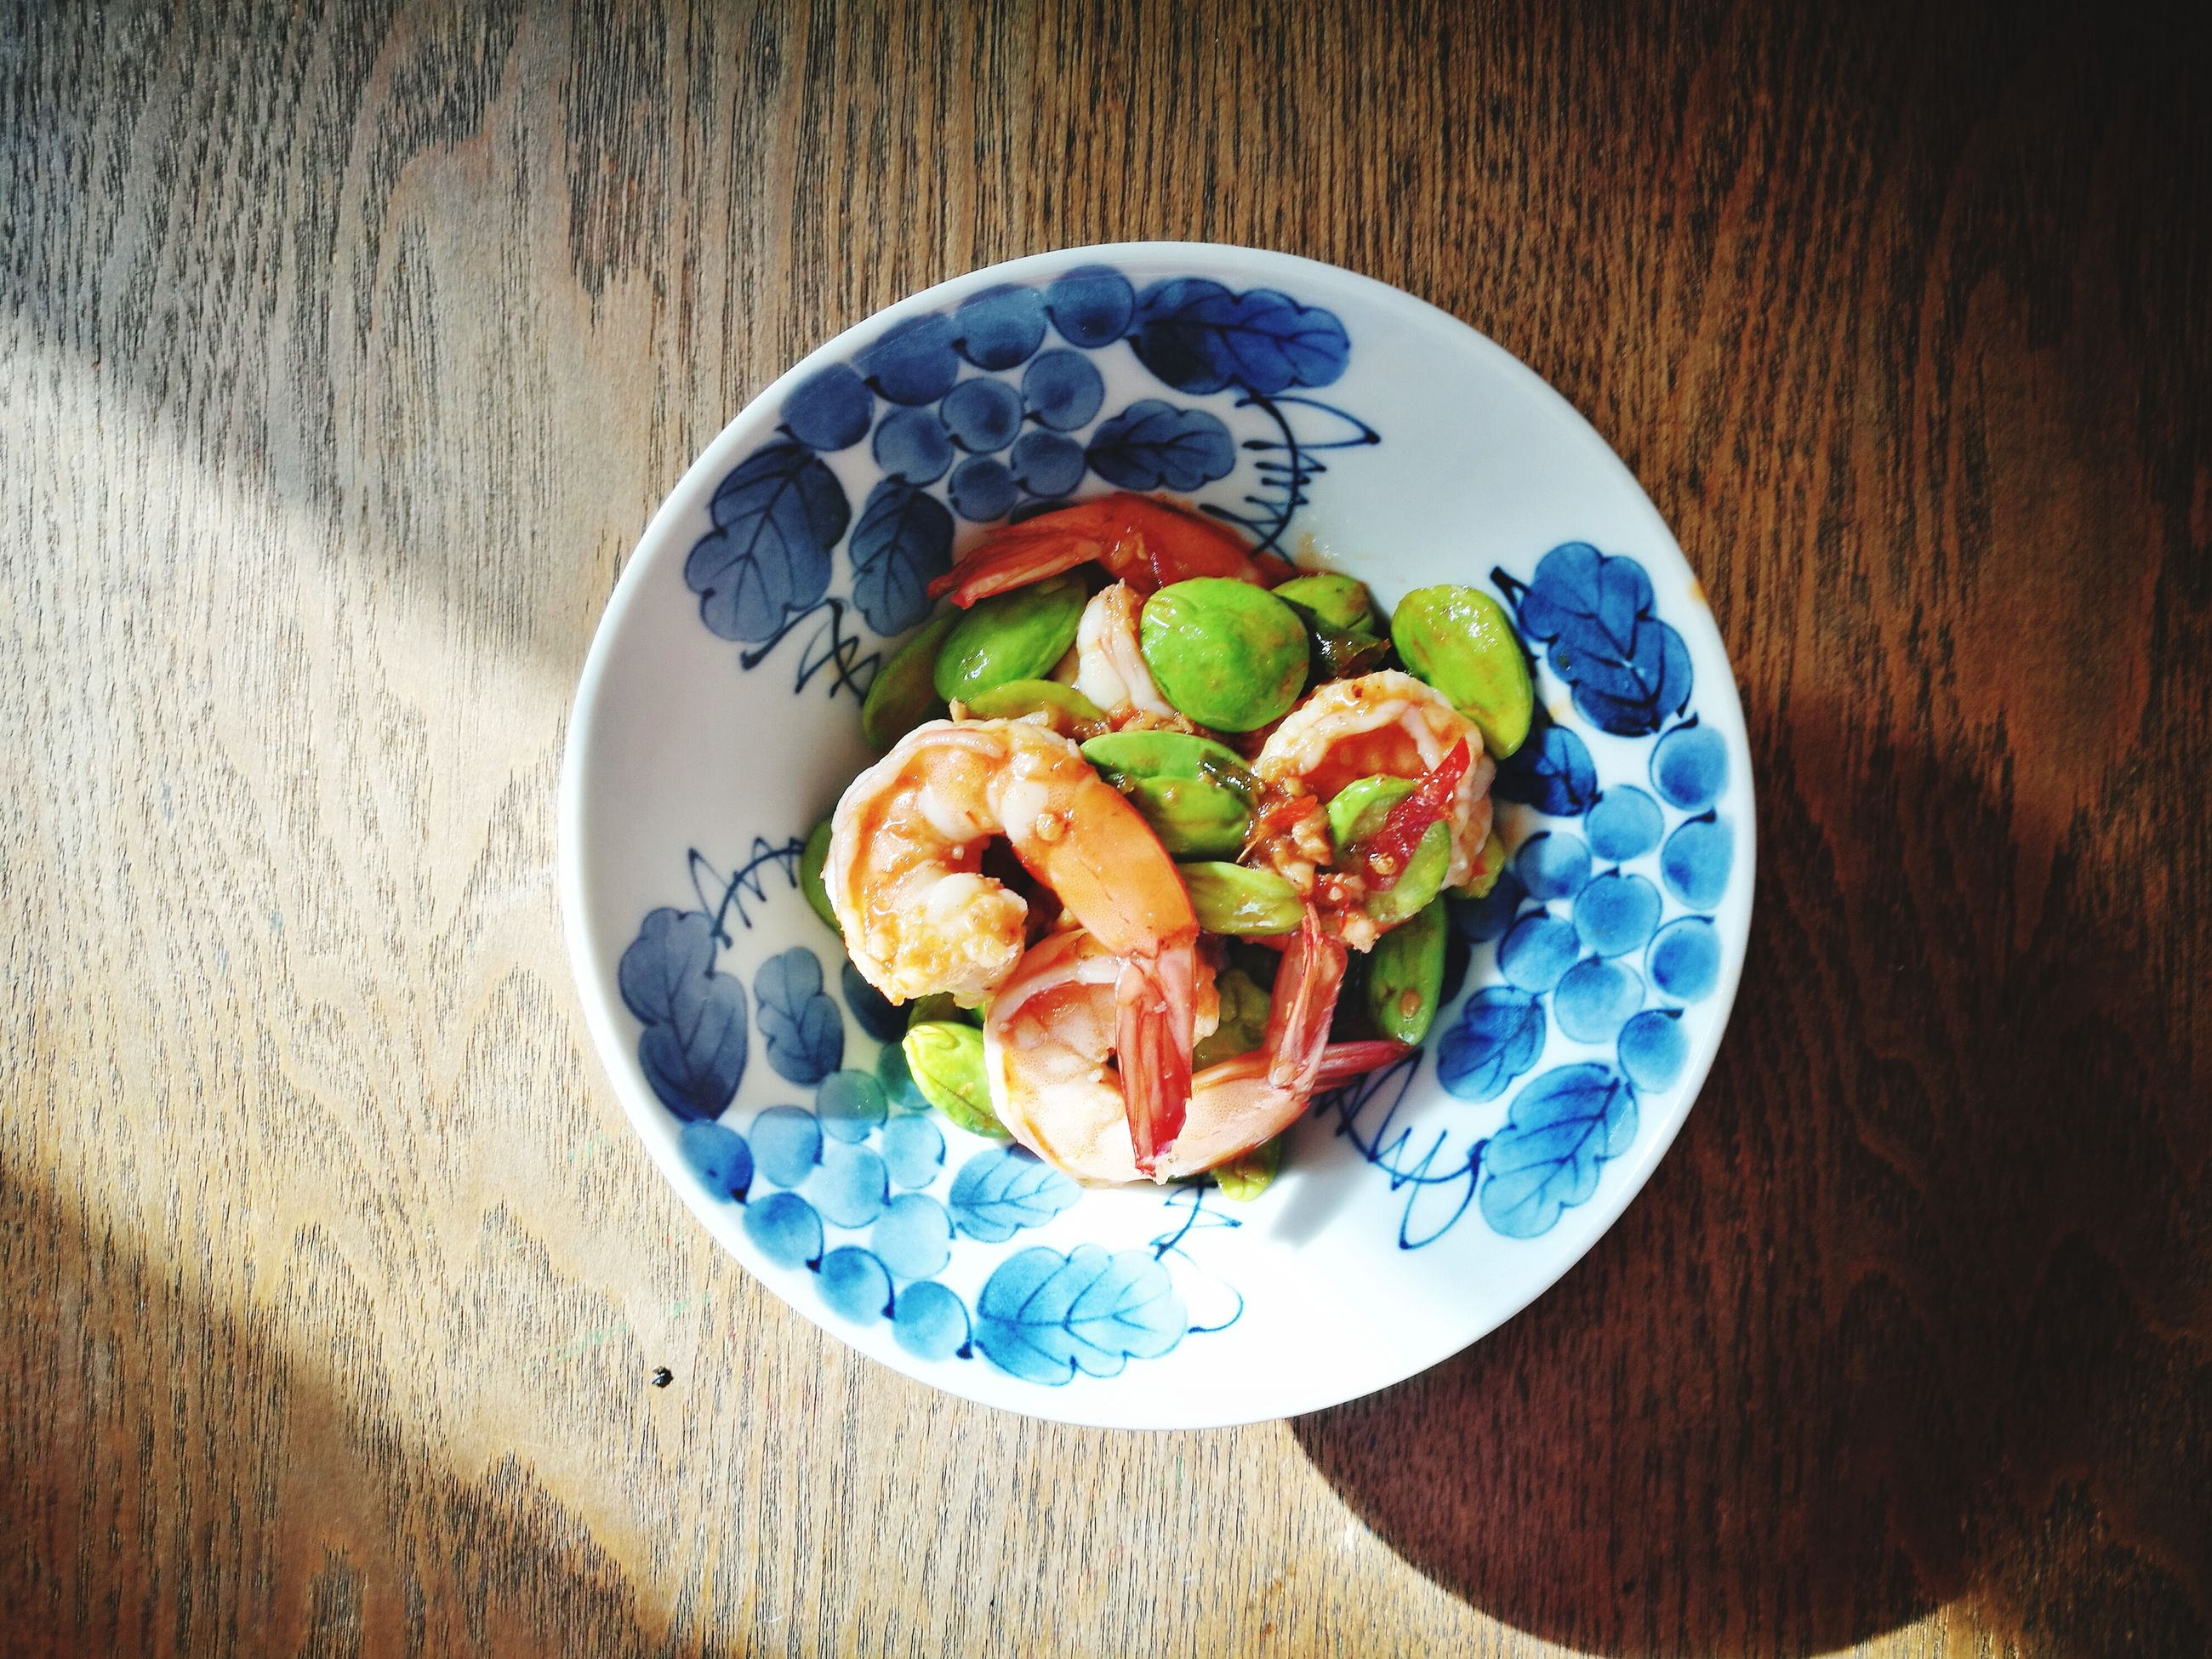 food and drink, food, plate, table, freshness, healthy eating, ready-to-eat, serving size, indoors, seafood, no people, directly above, bowl, indulgence, close-up, day